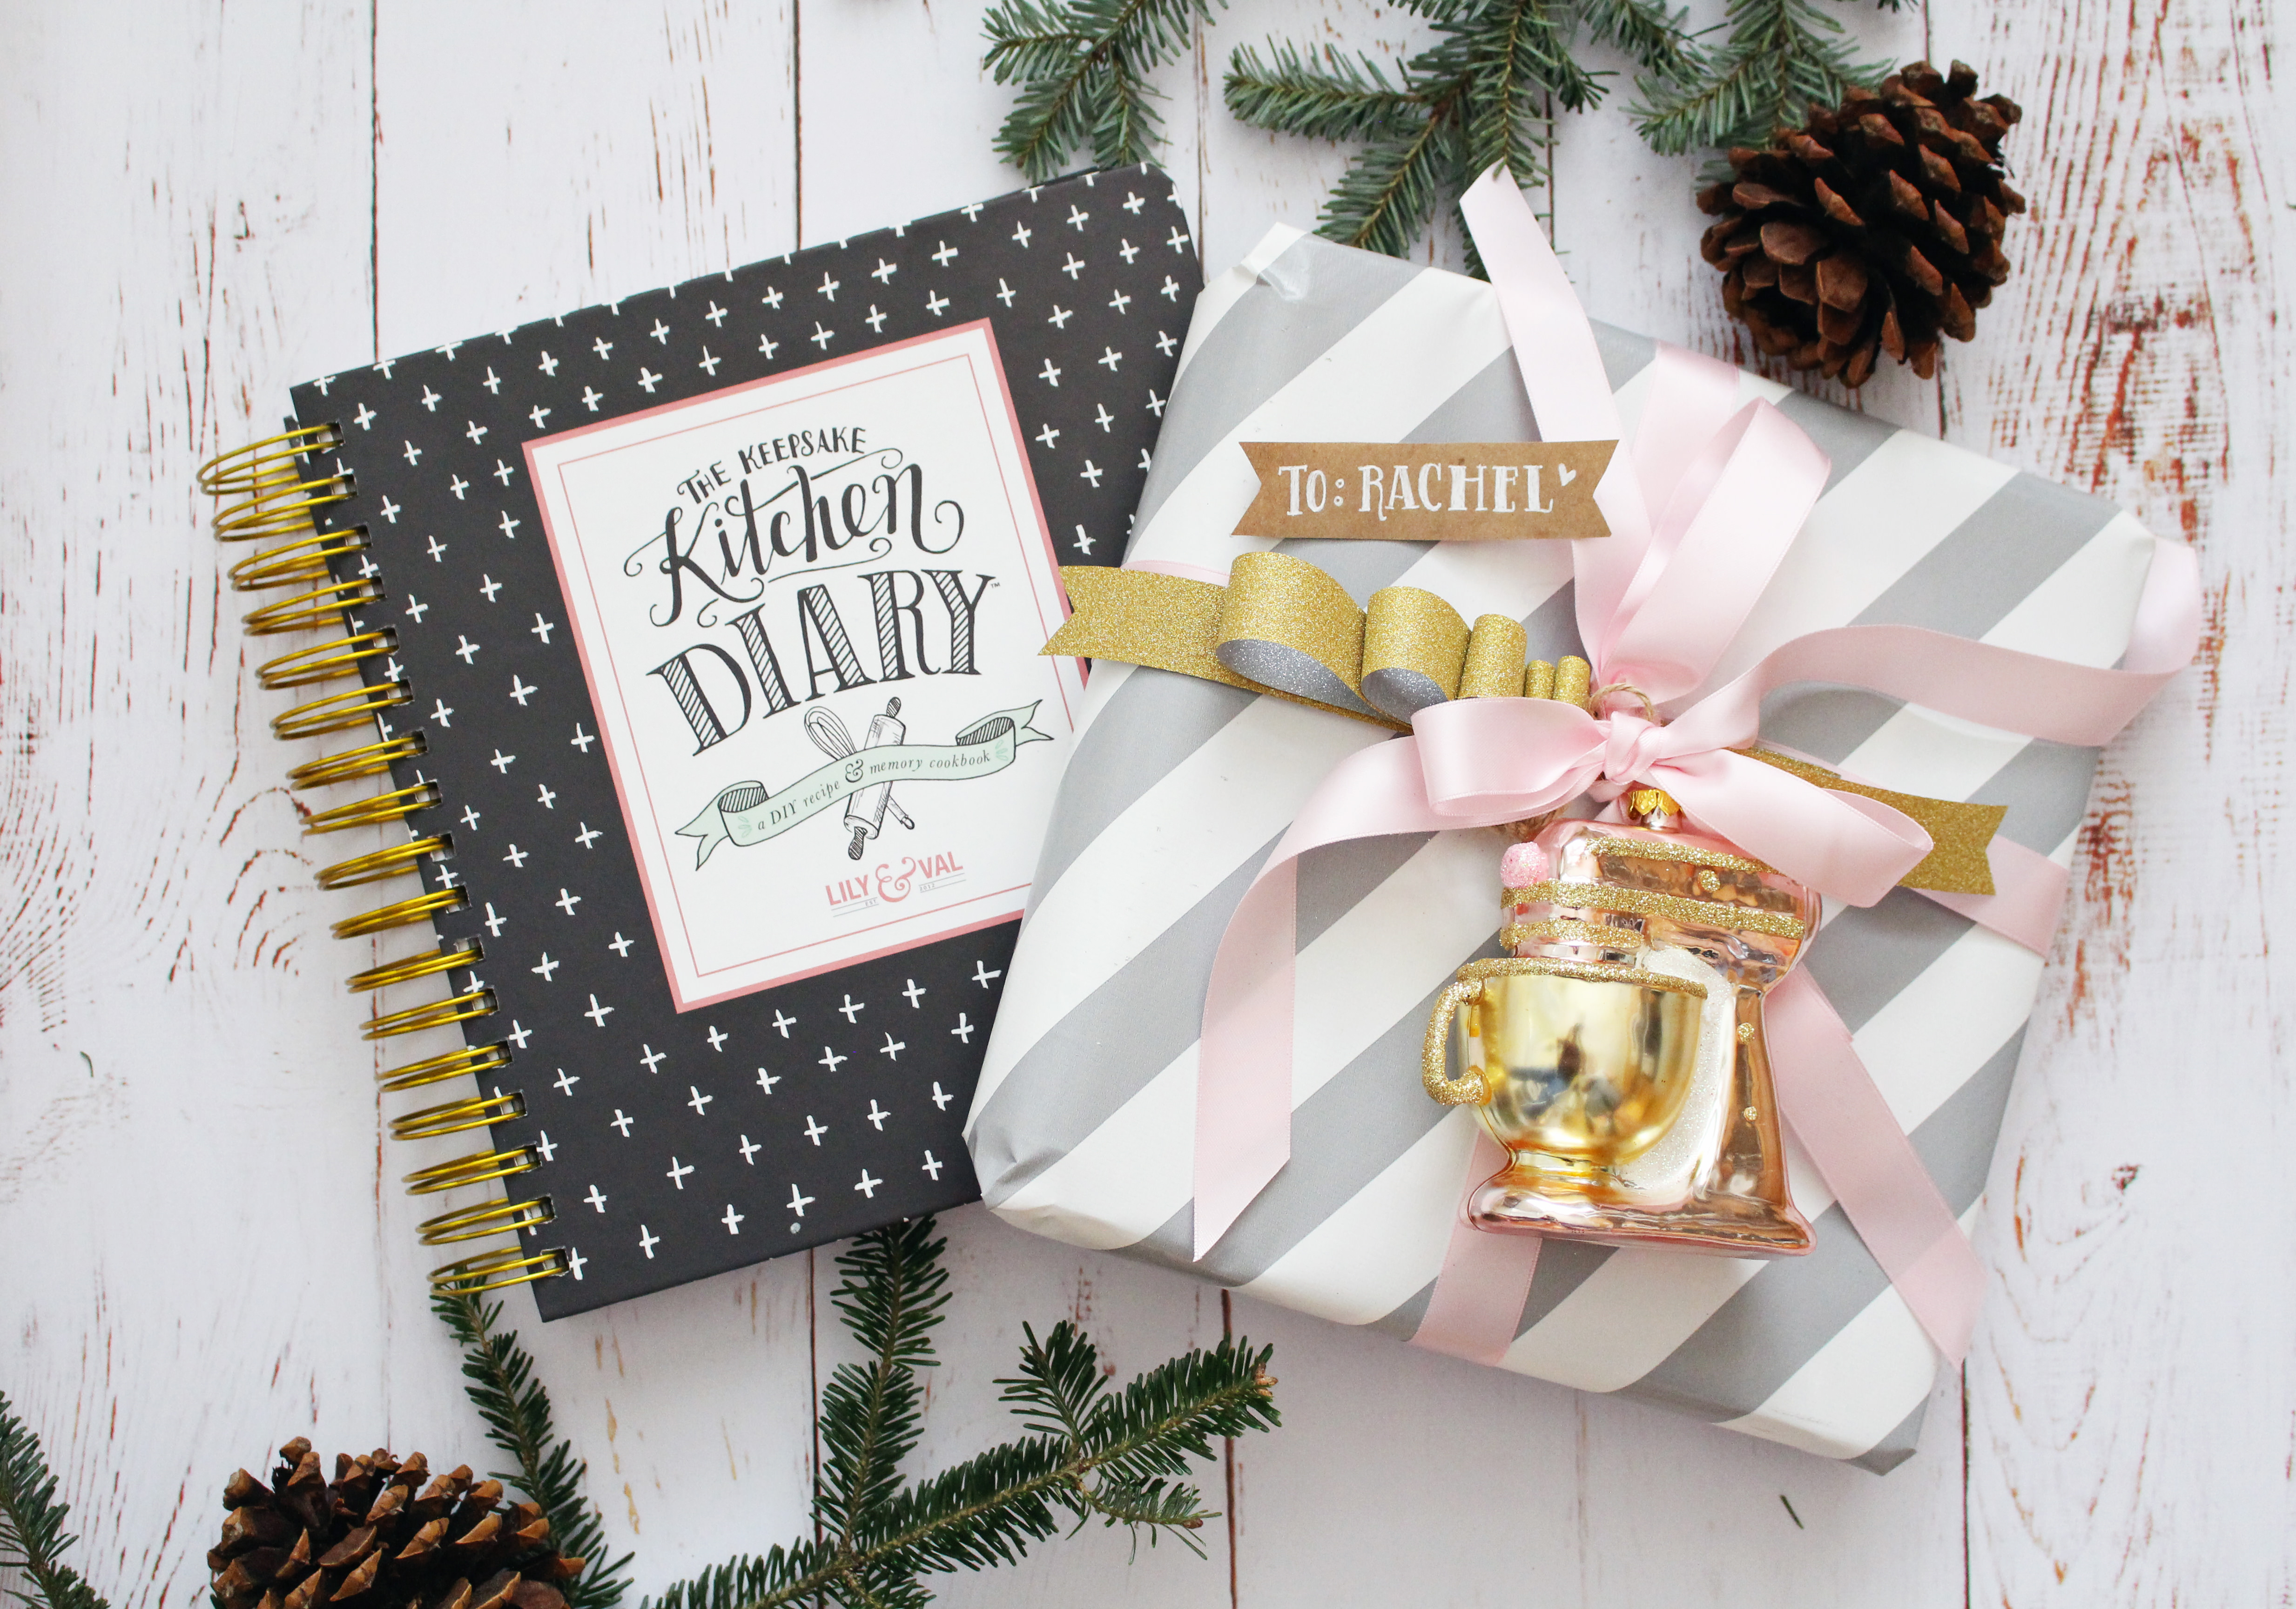 Pretty wrapping ideas for your Keepsake Kitchen Diary by Lily & Val